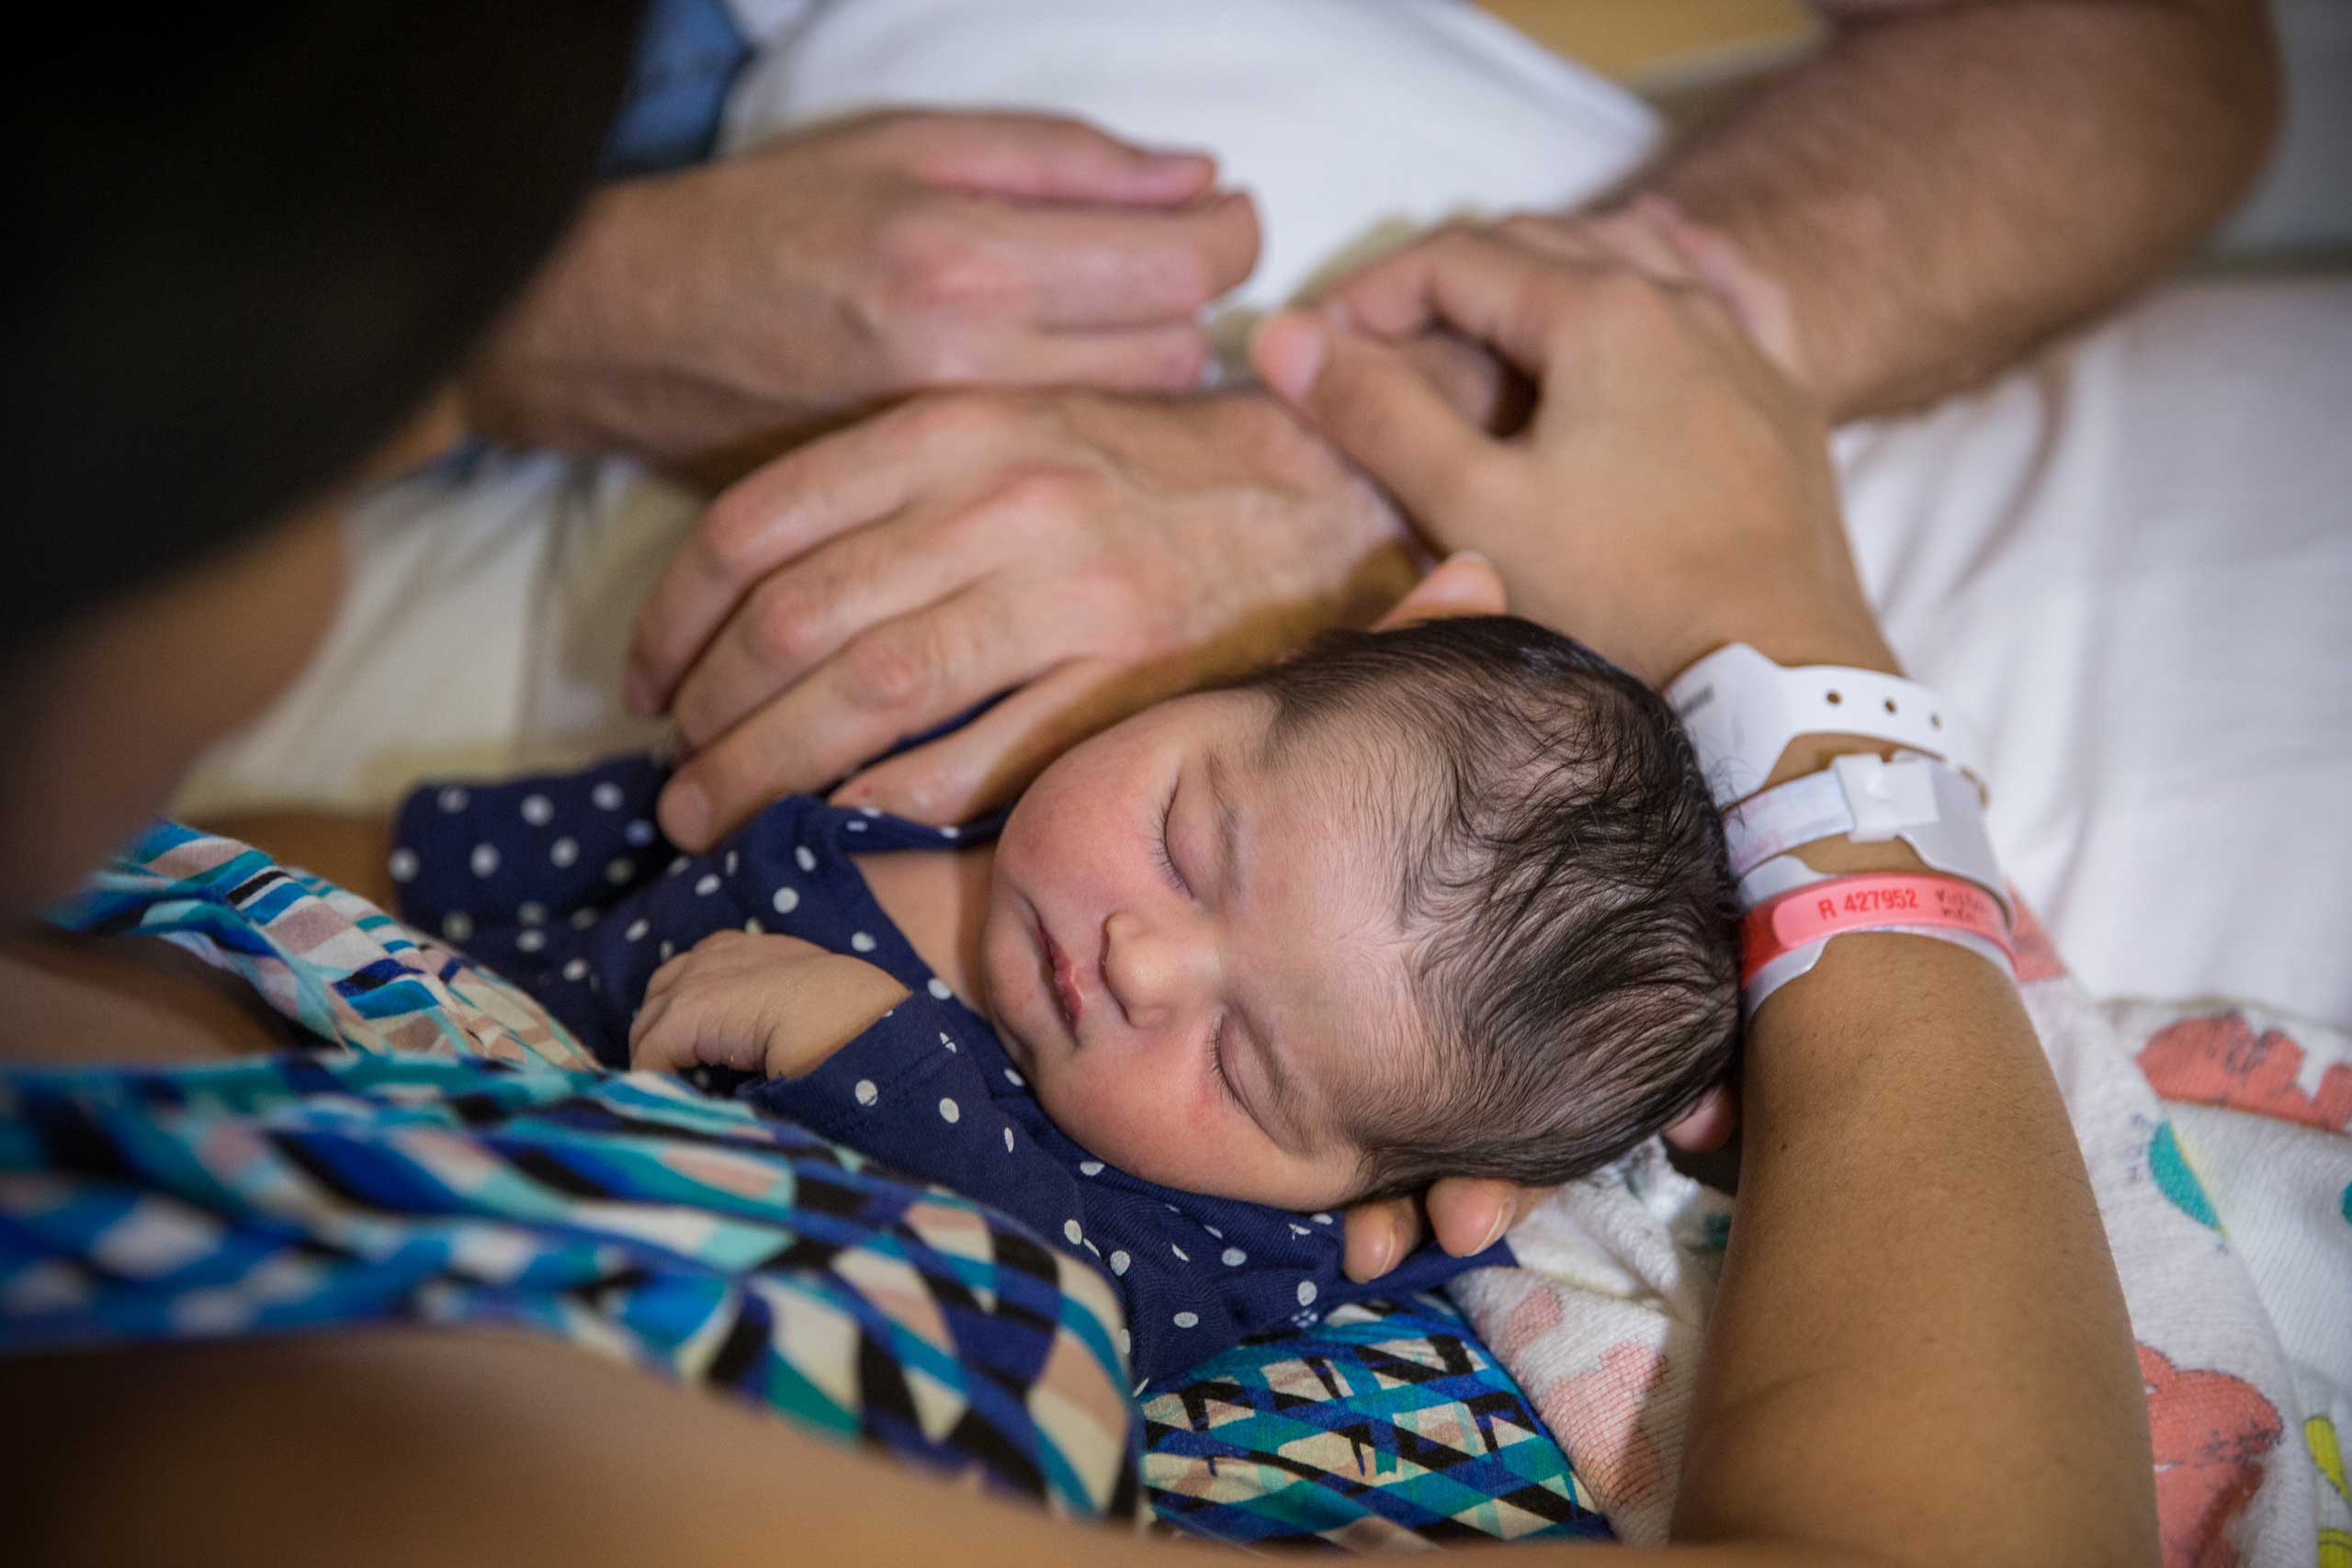 A three-day old baby girl at Shady Grove Adventist Hospital, in Rockville, Maryland, Sept. 5, 2014.